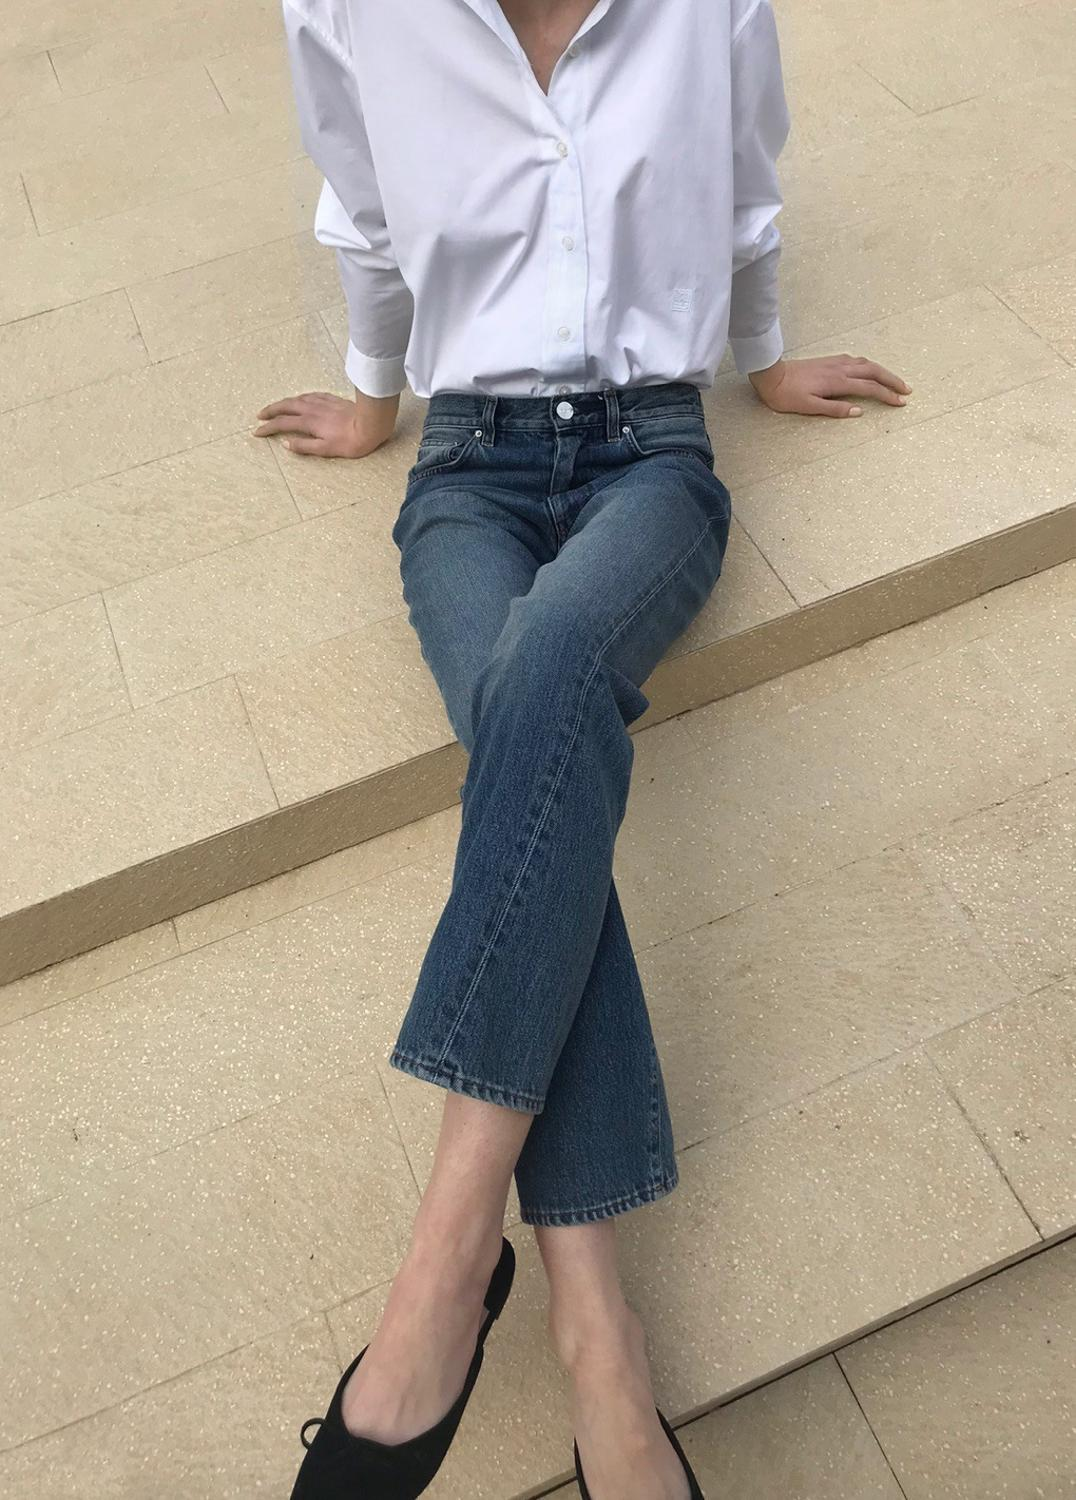 Women Jeans Casual Wild Loose Straight Cotton Jeans Ankle-length Pants